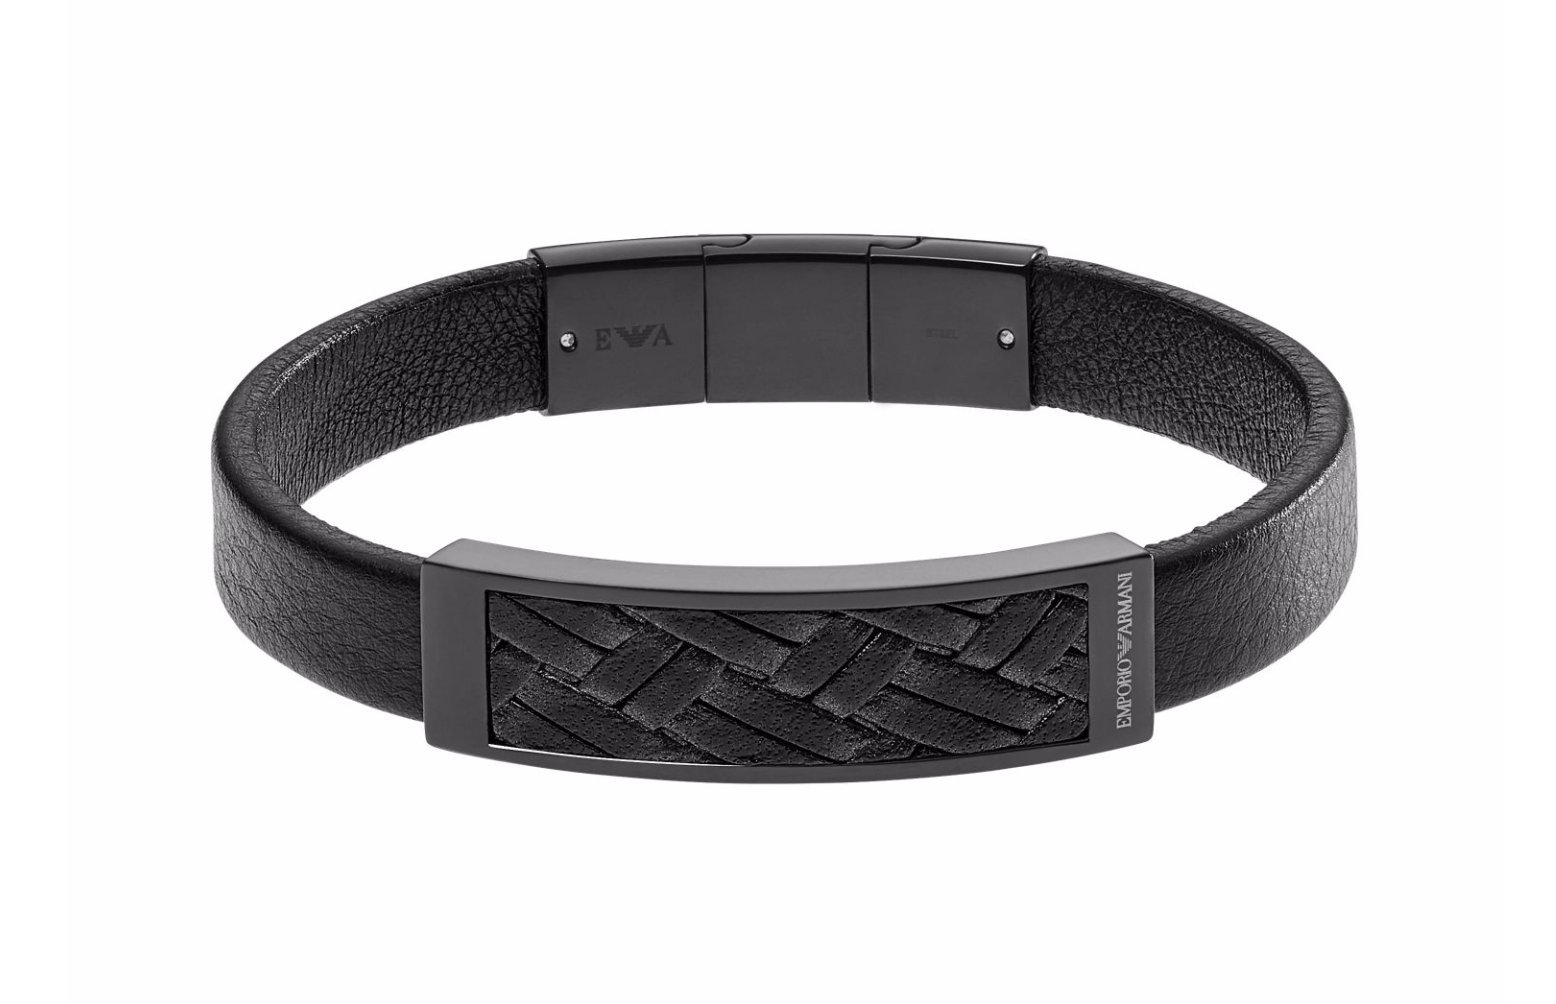 Emporio Armani Black IP Plaque with Braided Leather Inlay Bracelet EGS2386 in Gift Box